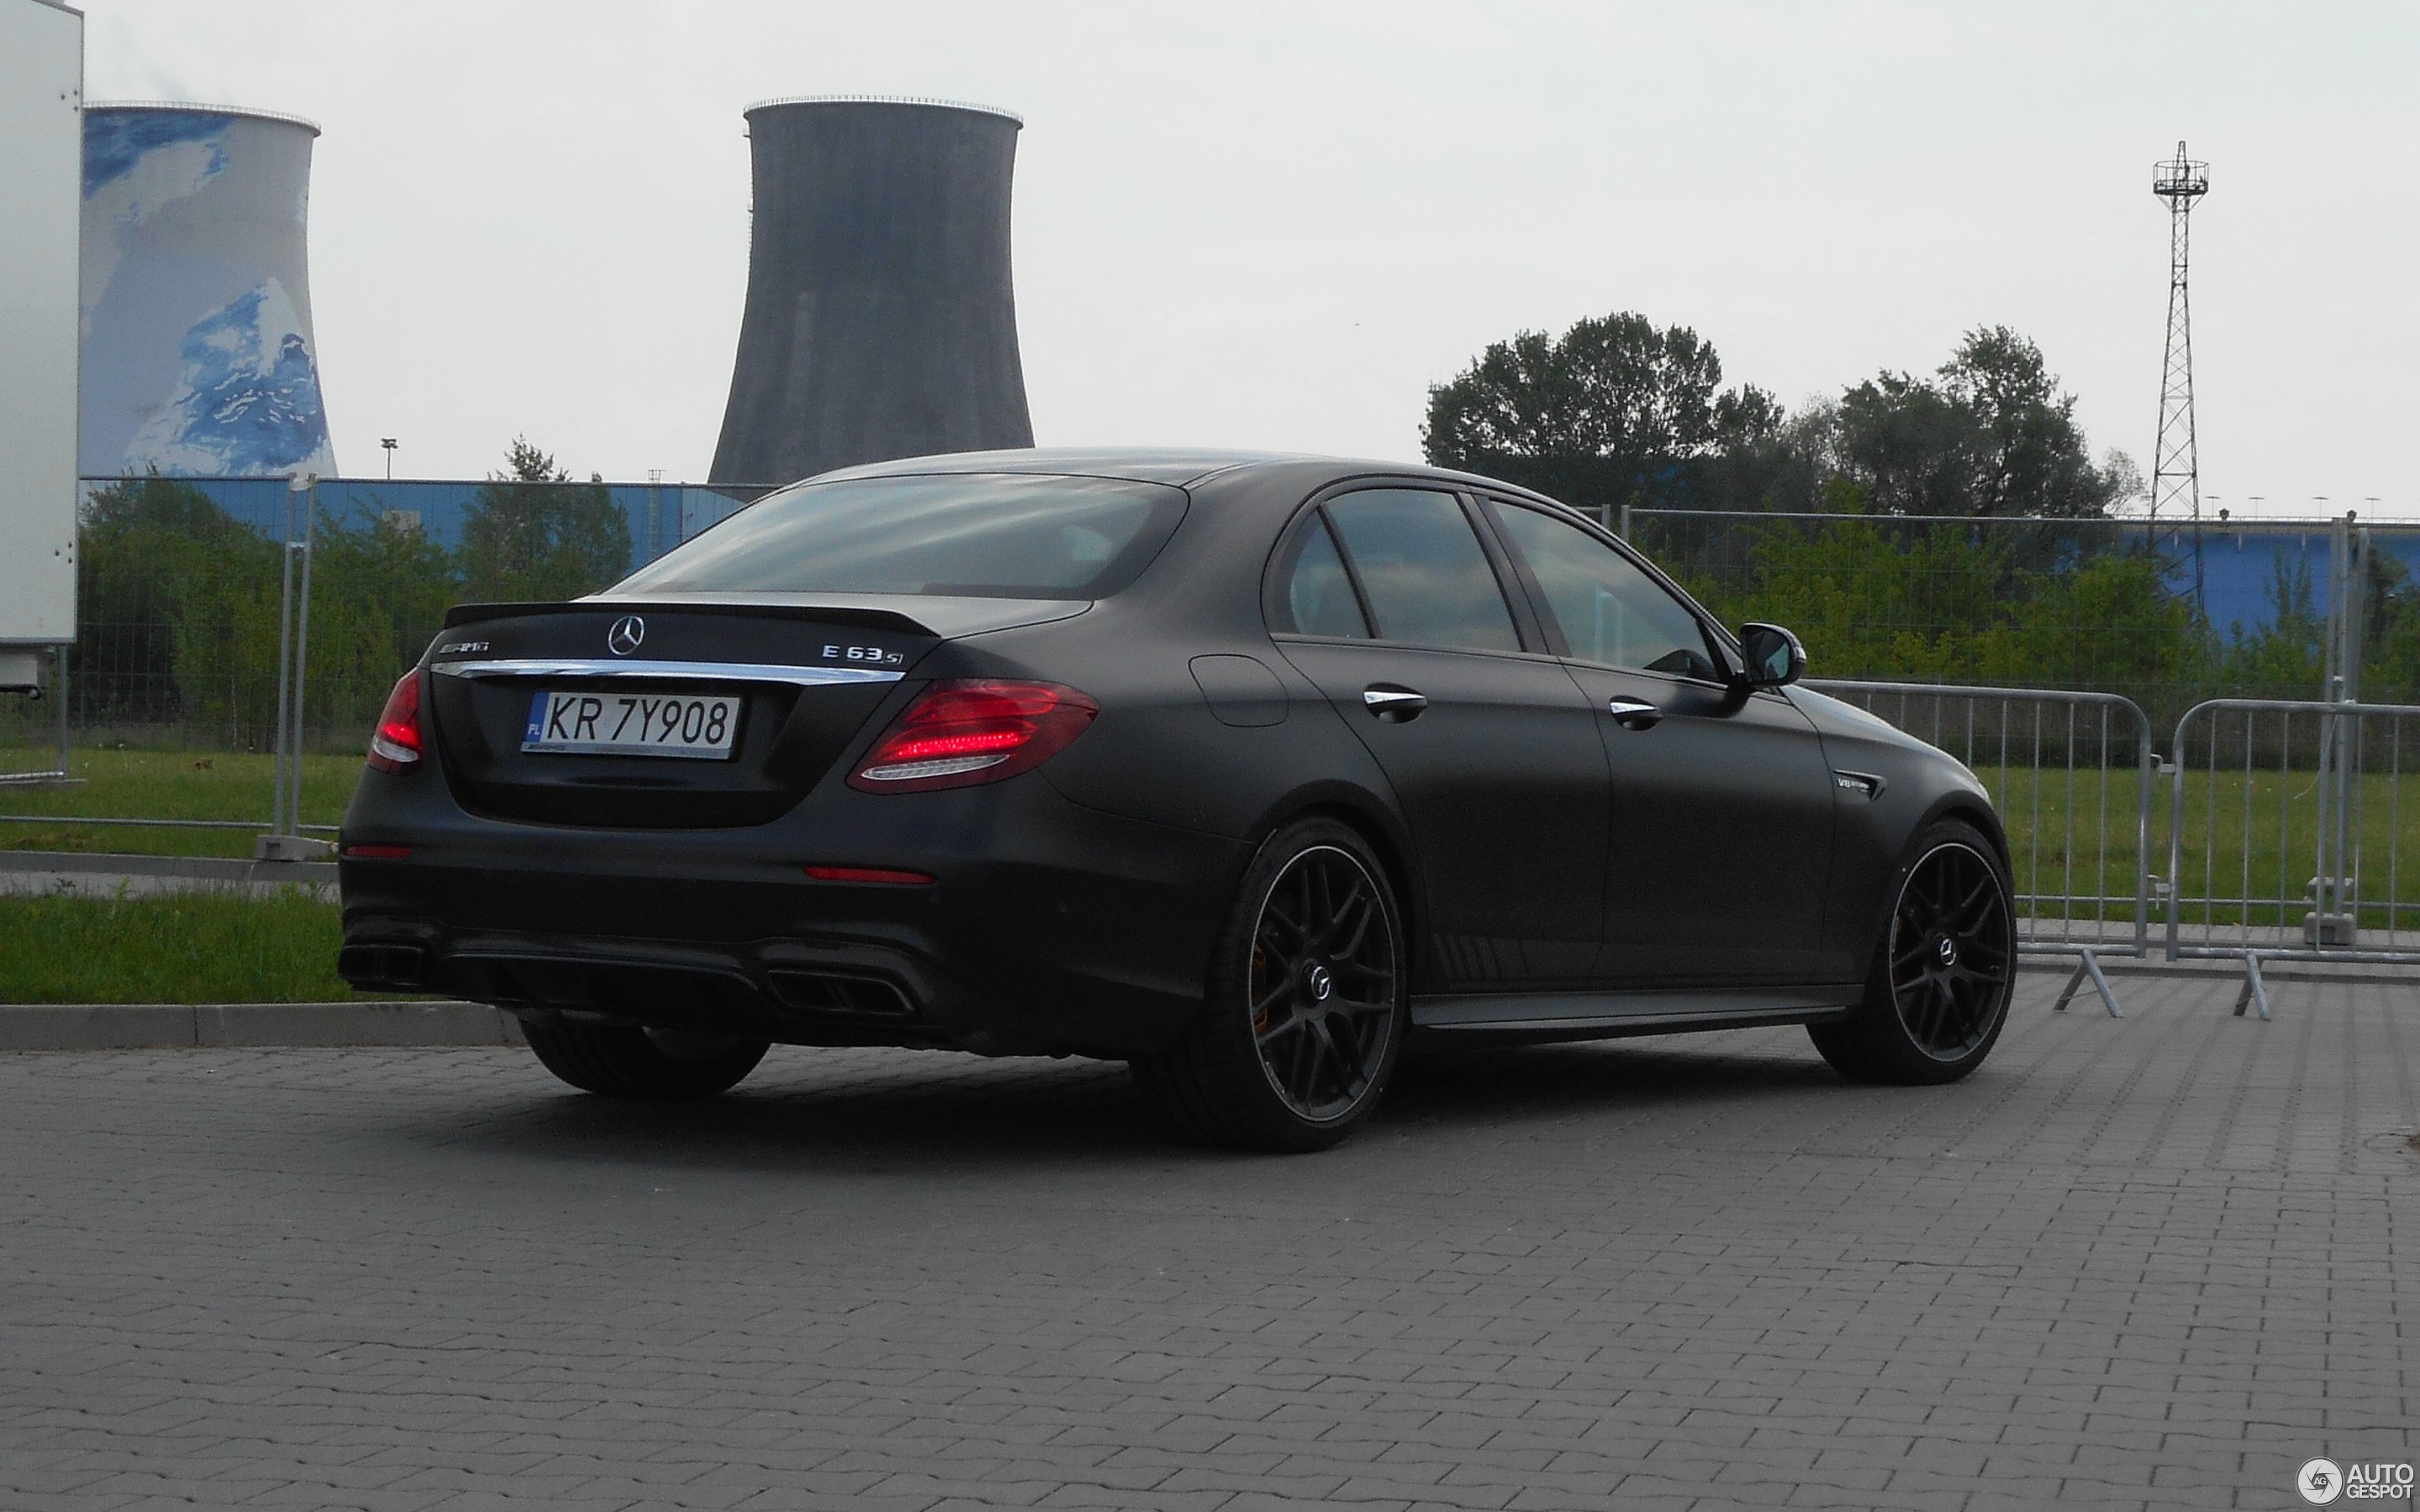 Mercedes AMG E 63 S W213 Edition 1 20 May 2017 Autogespot